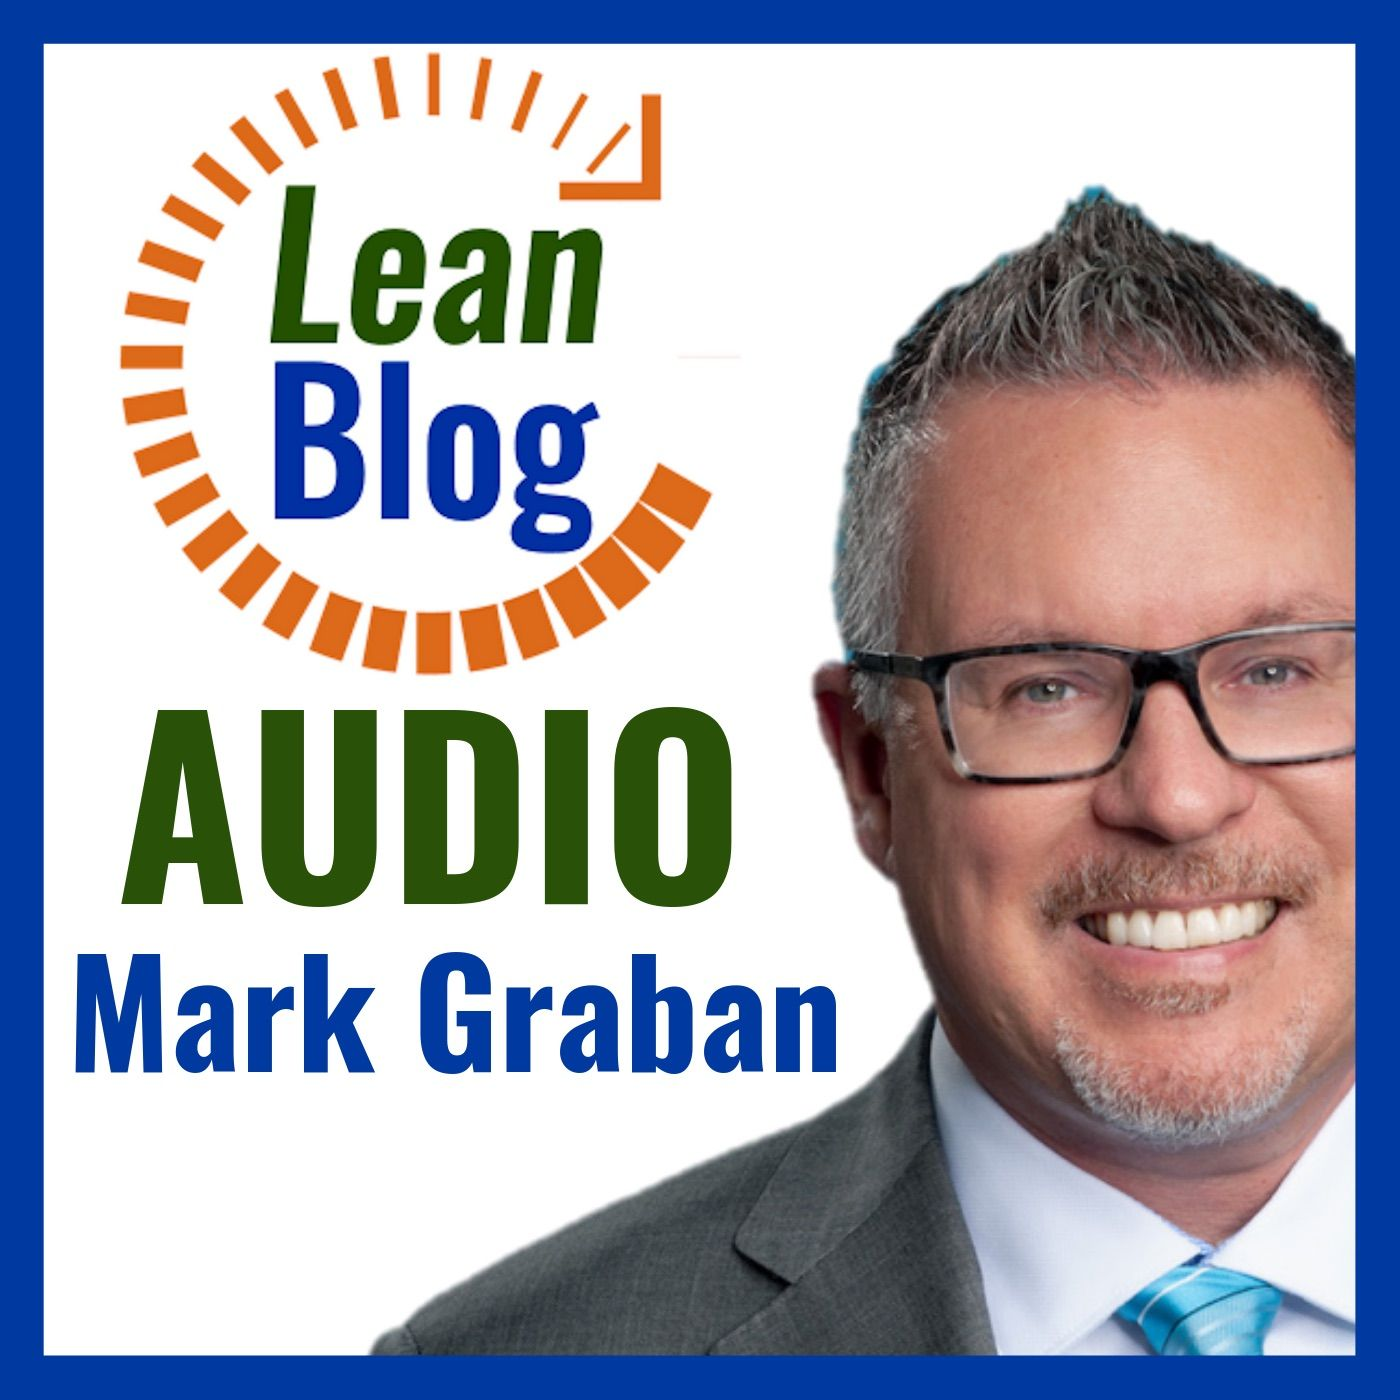 Lean Blog Audio